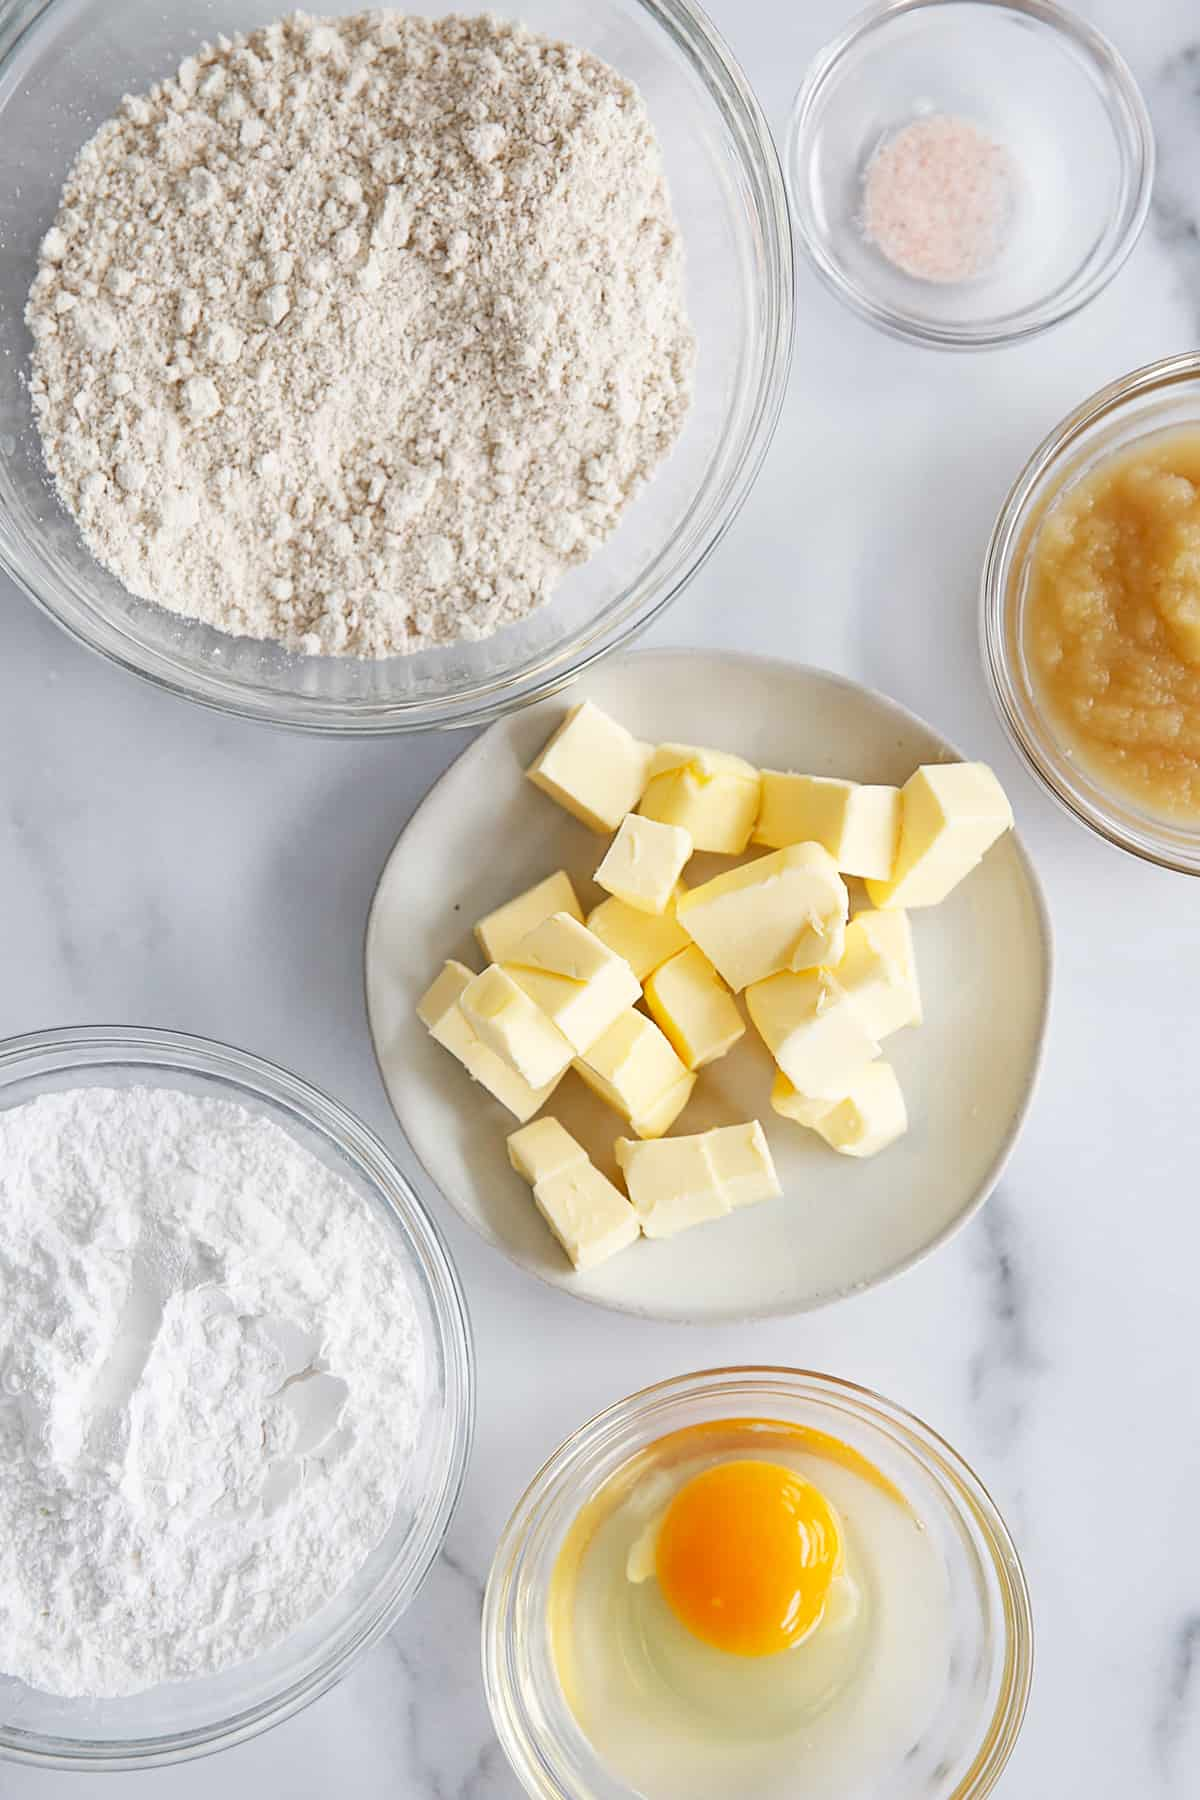 Ingredients for oat flour pie crust